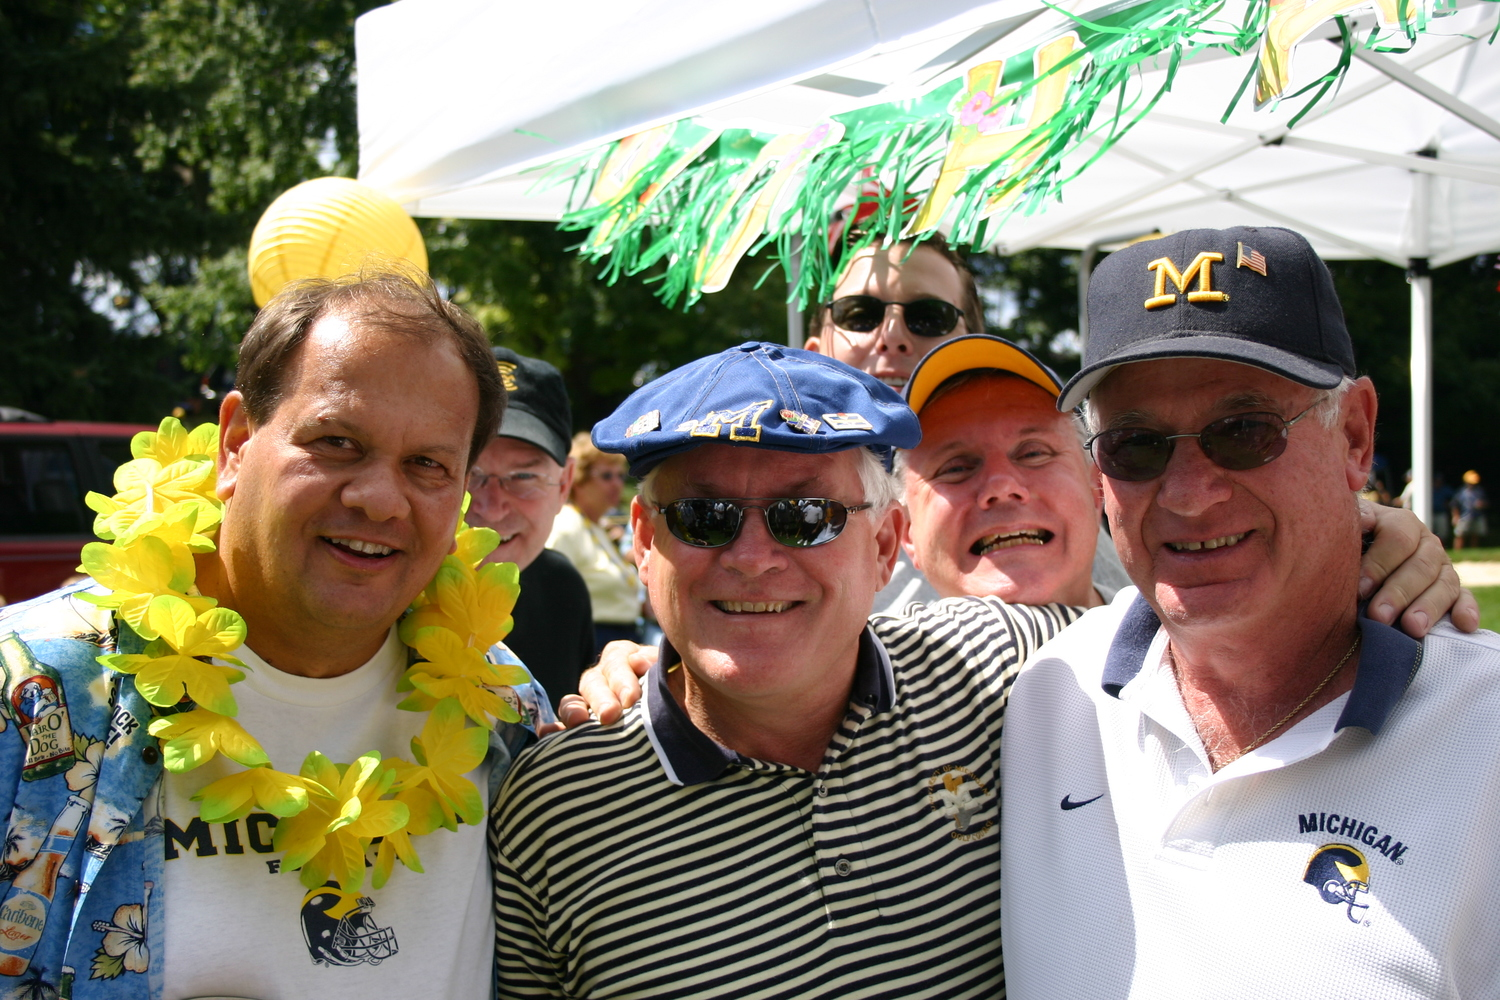 September 3, 2005:  Our first Luau themed tailgate, and the 100th consecutive game for Bubba and Stephen.  Pictured are The Godfather, Rubley (sp?), and Dogan...with a double photo bomb by Stephy and Captain Michigan.   Michigan defeated Northern Illinois 33-17.